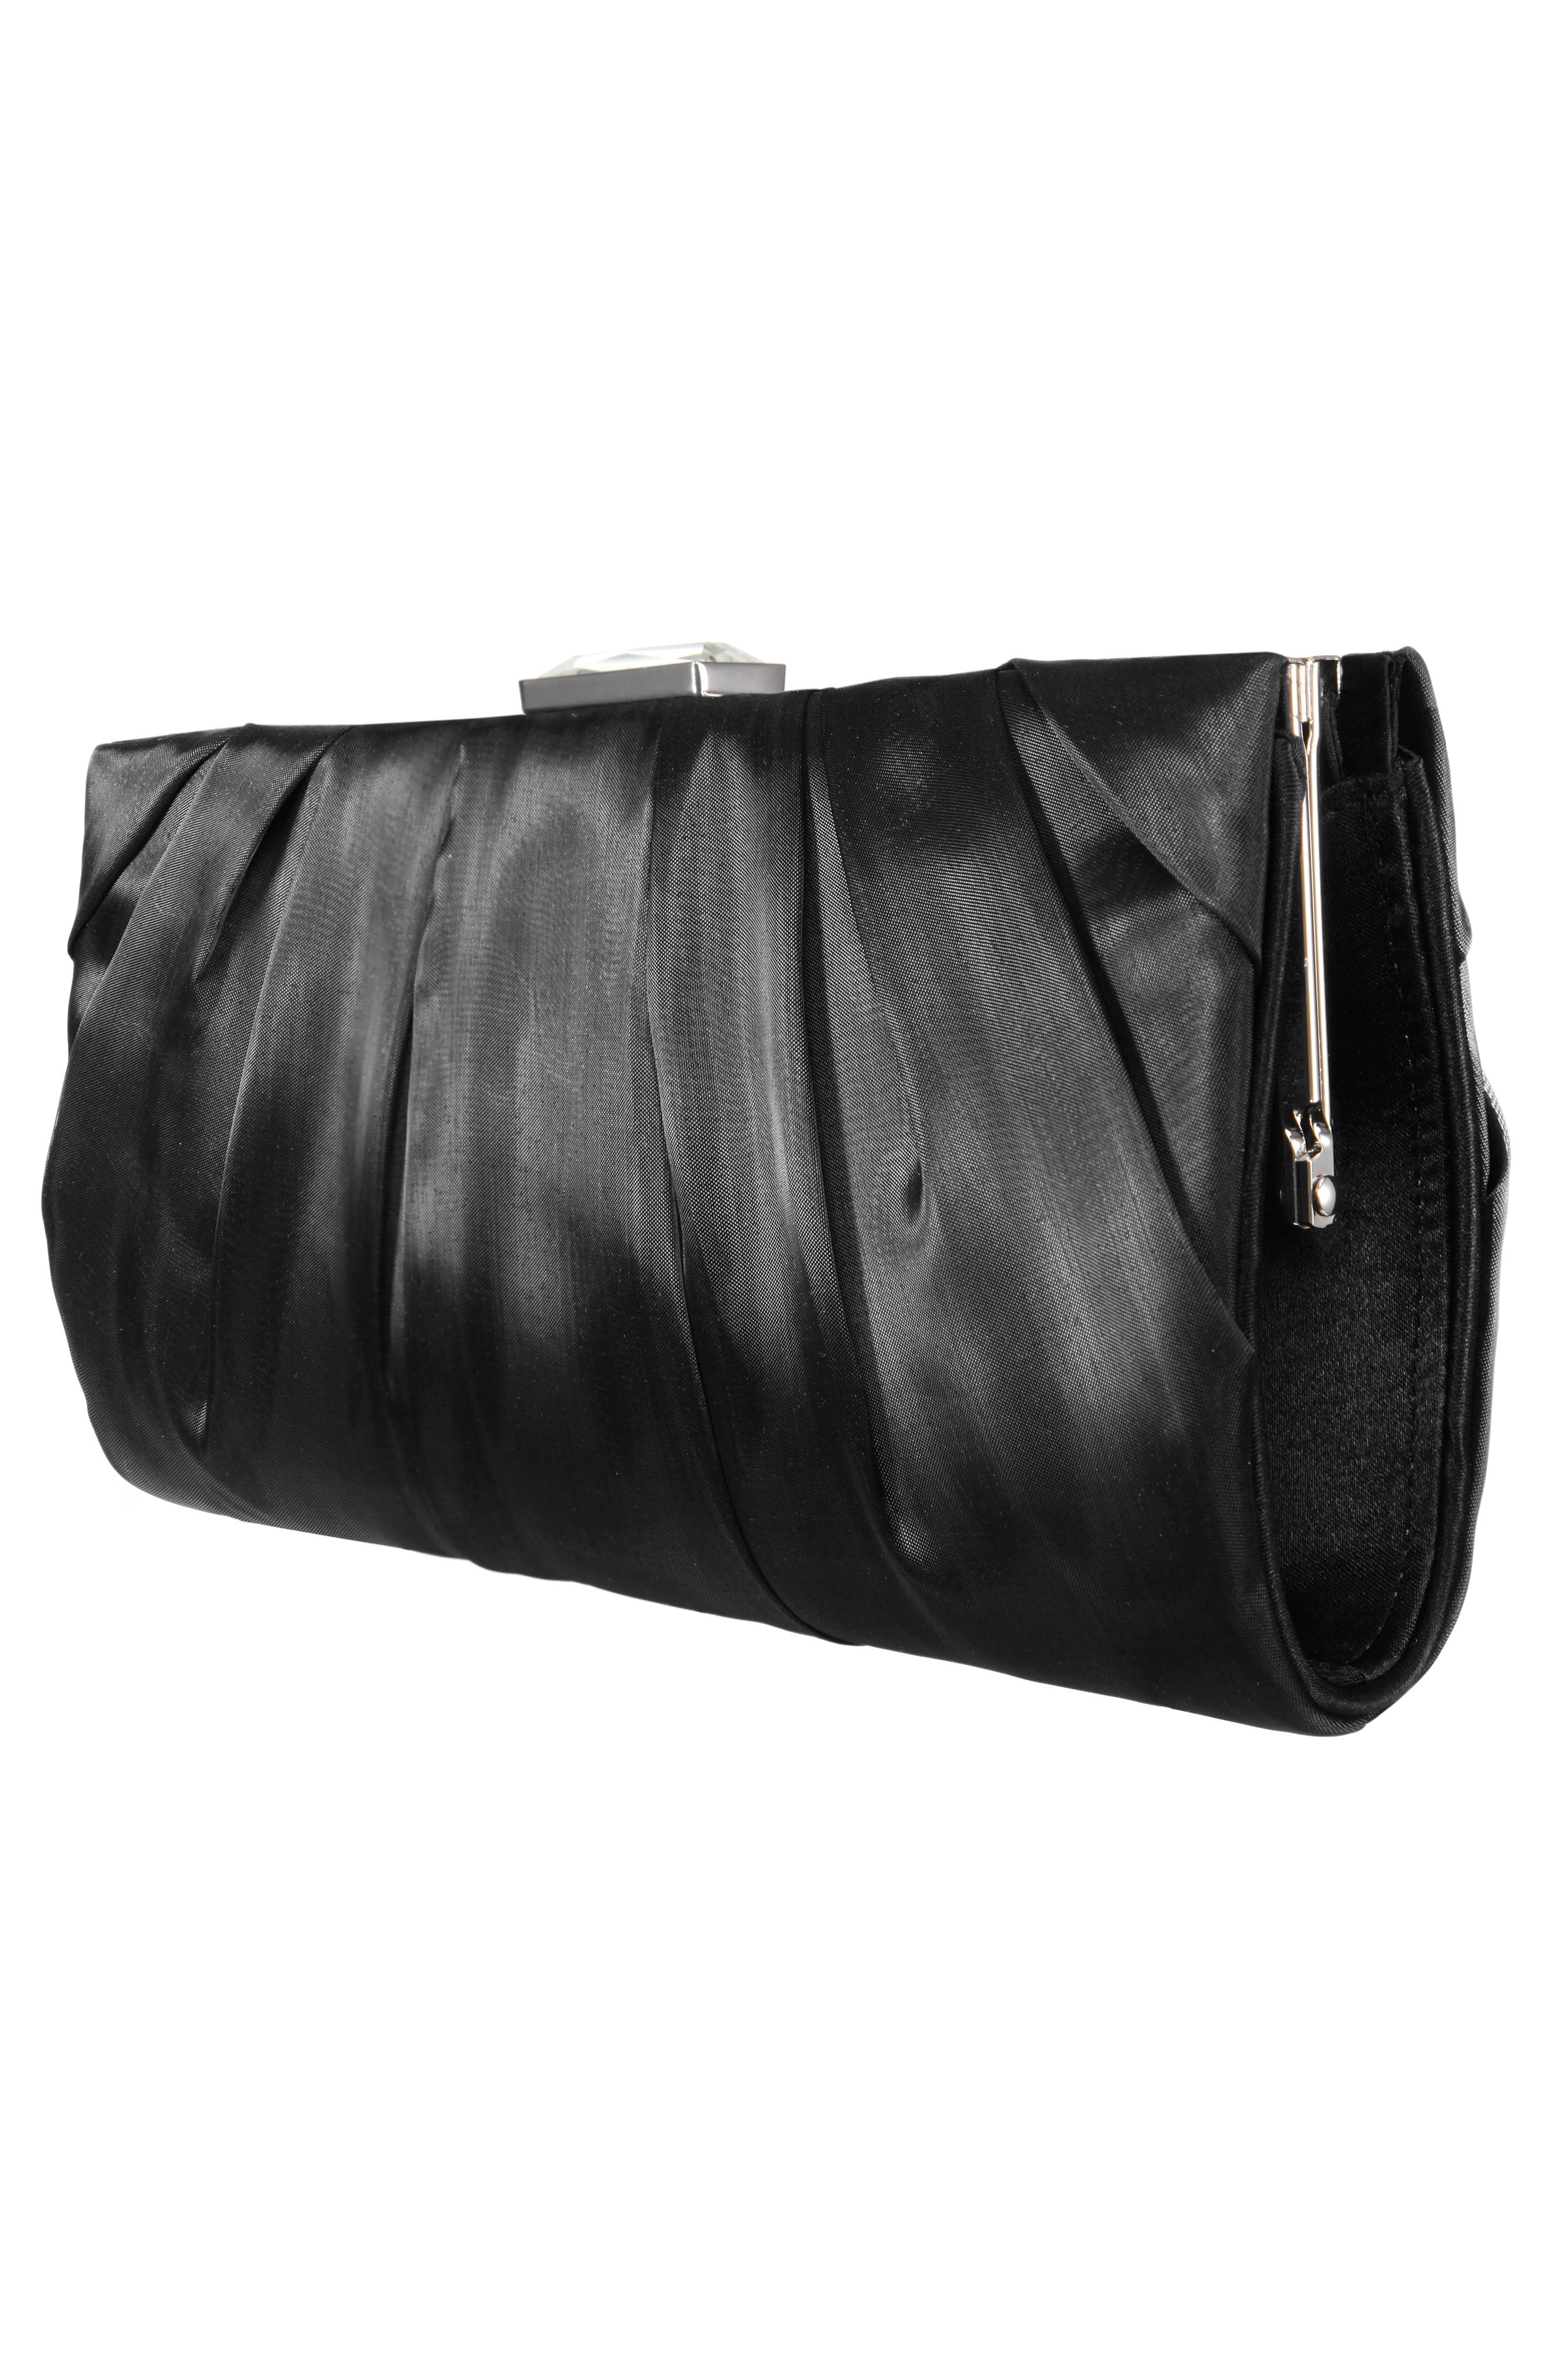 NINA, Crystal Clasp Pleated Clutch, Alternate thumbnail 4, color, BLACK